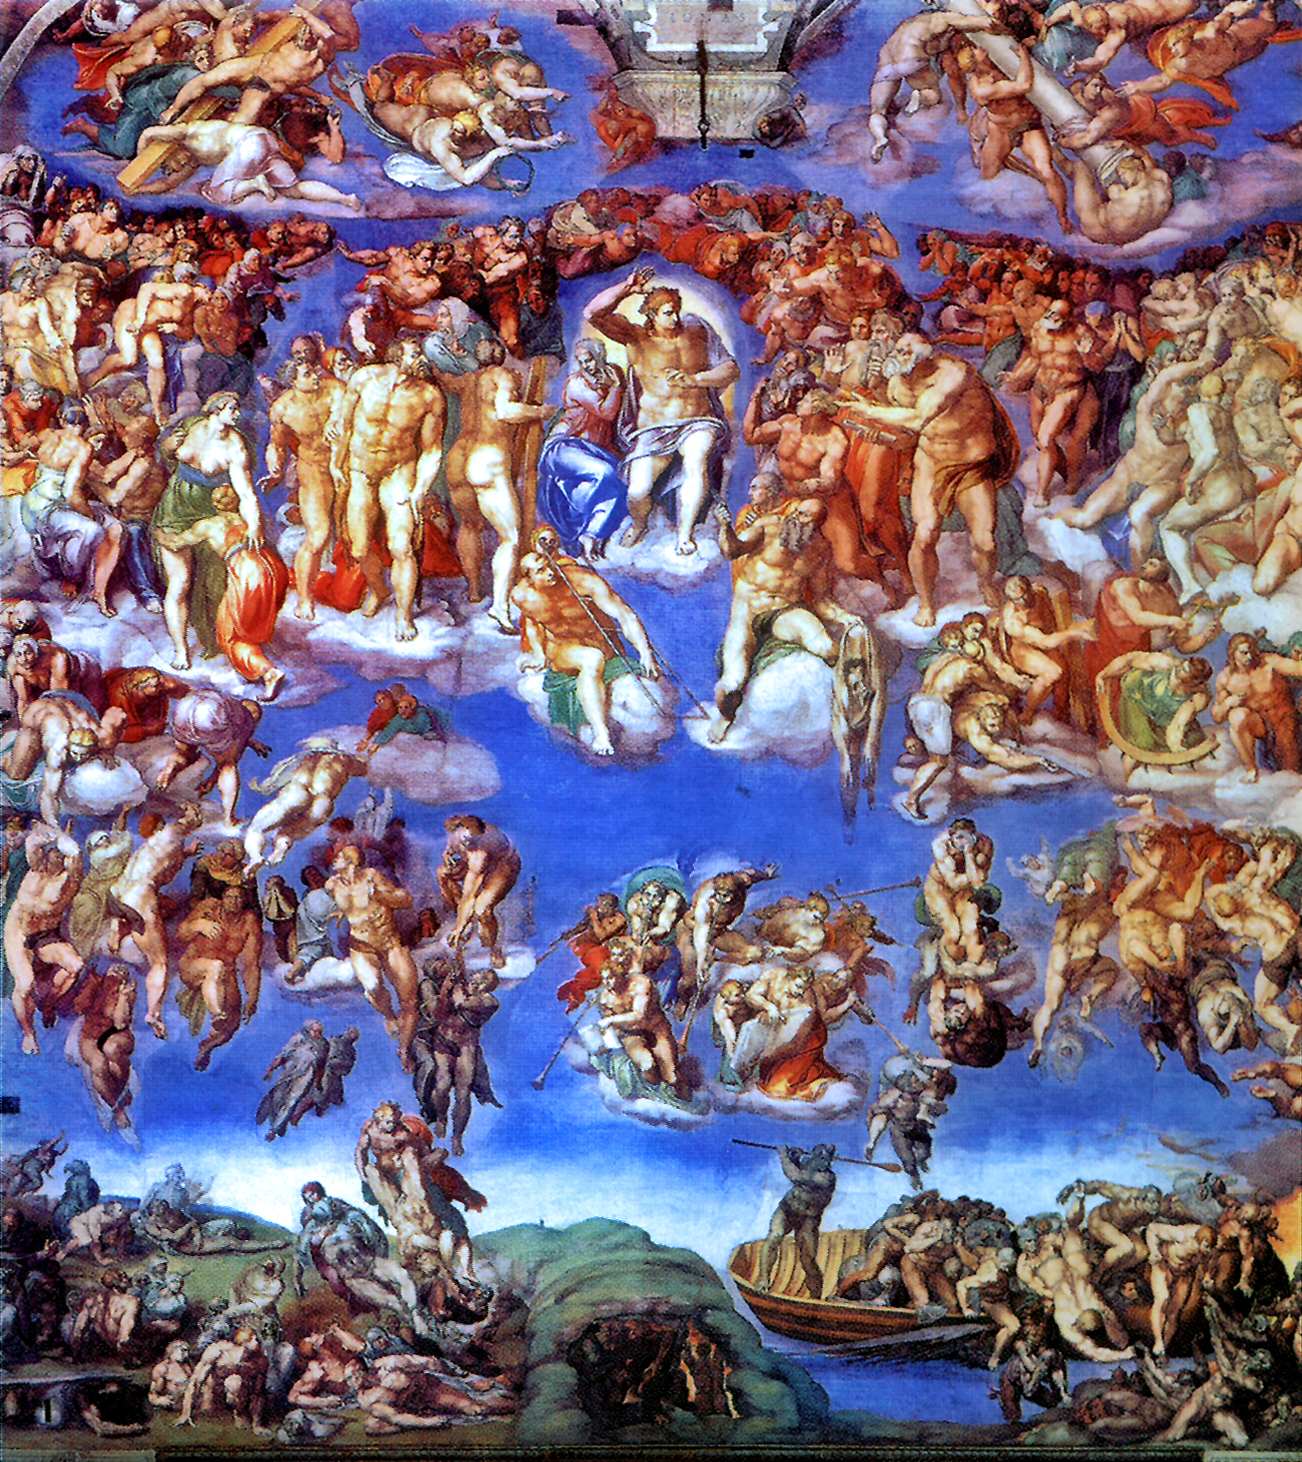 O julgamento final - Michelangelo